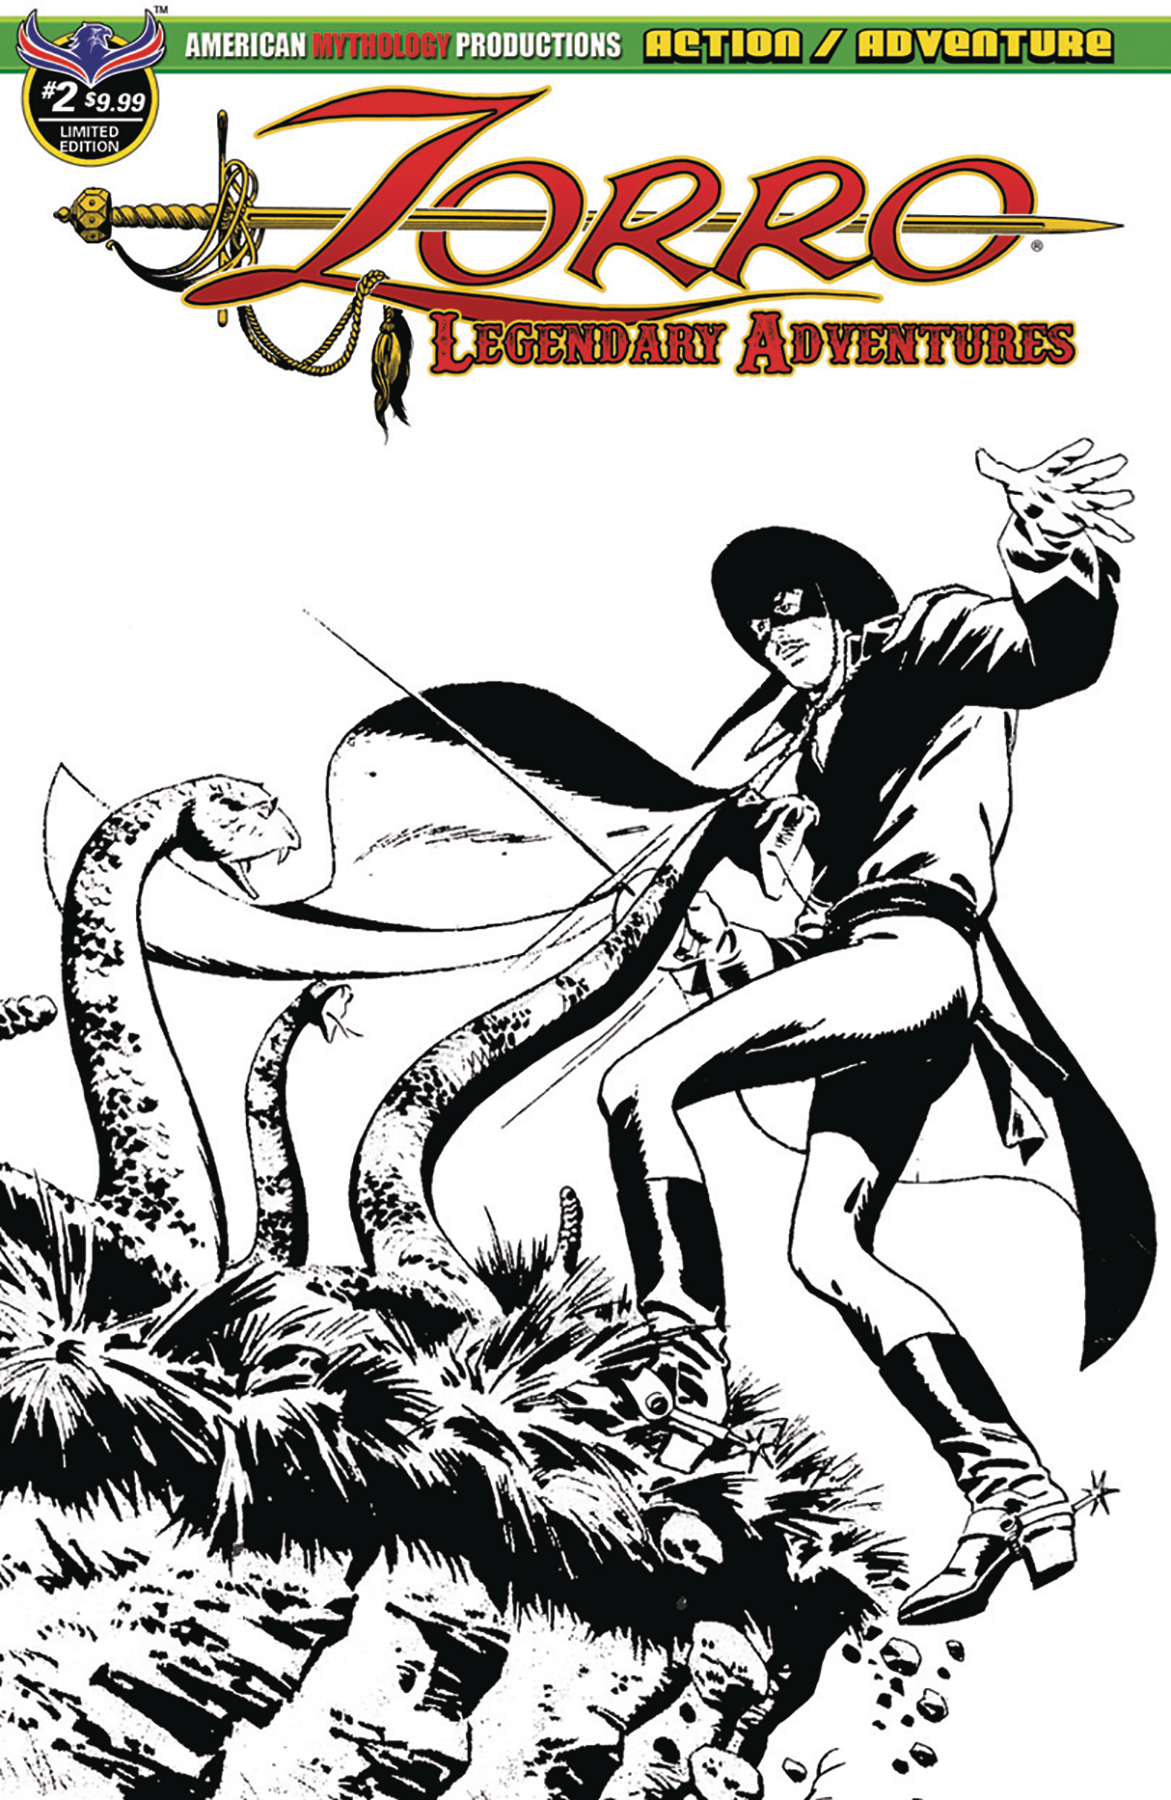 ZORRO LEGENDARY ADVENTURES #2 BLAZING BLADES OF ZORRO LTD ED